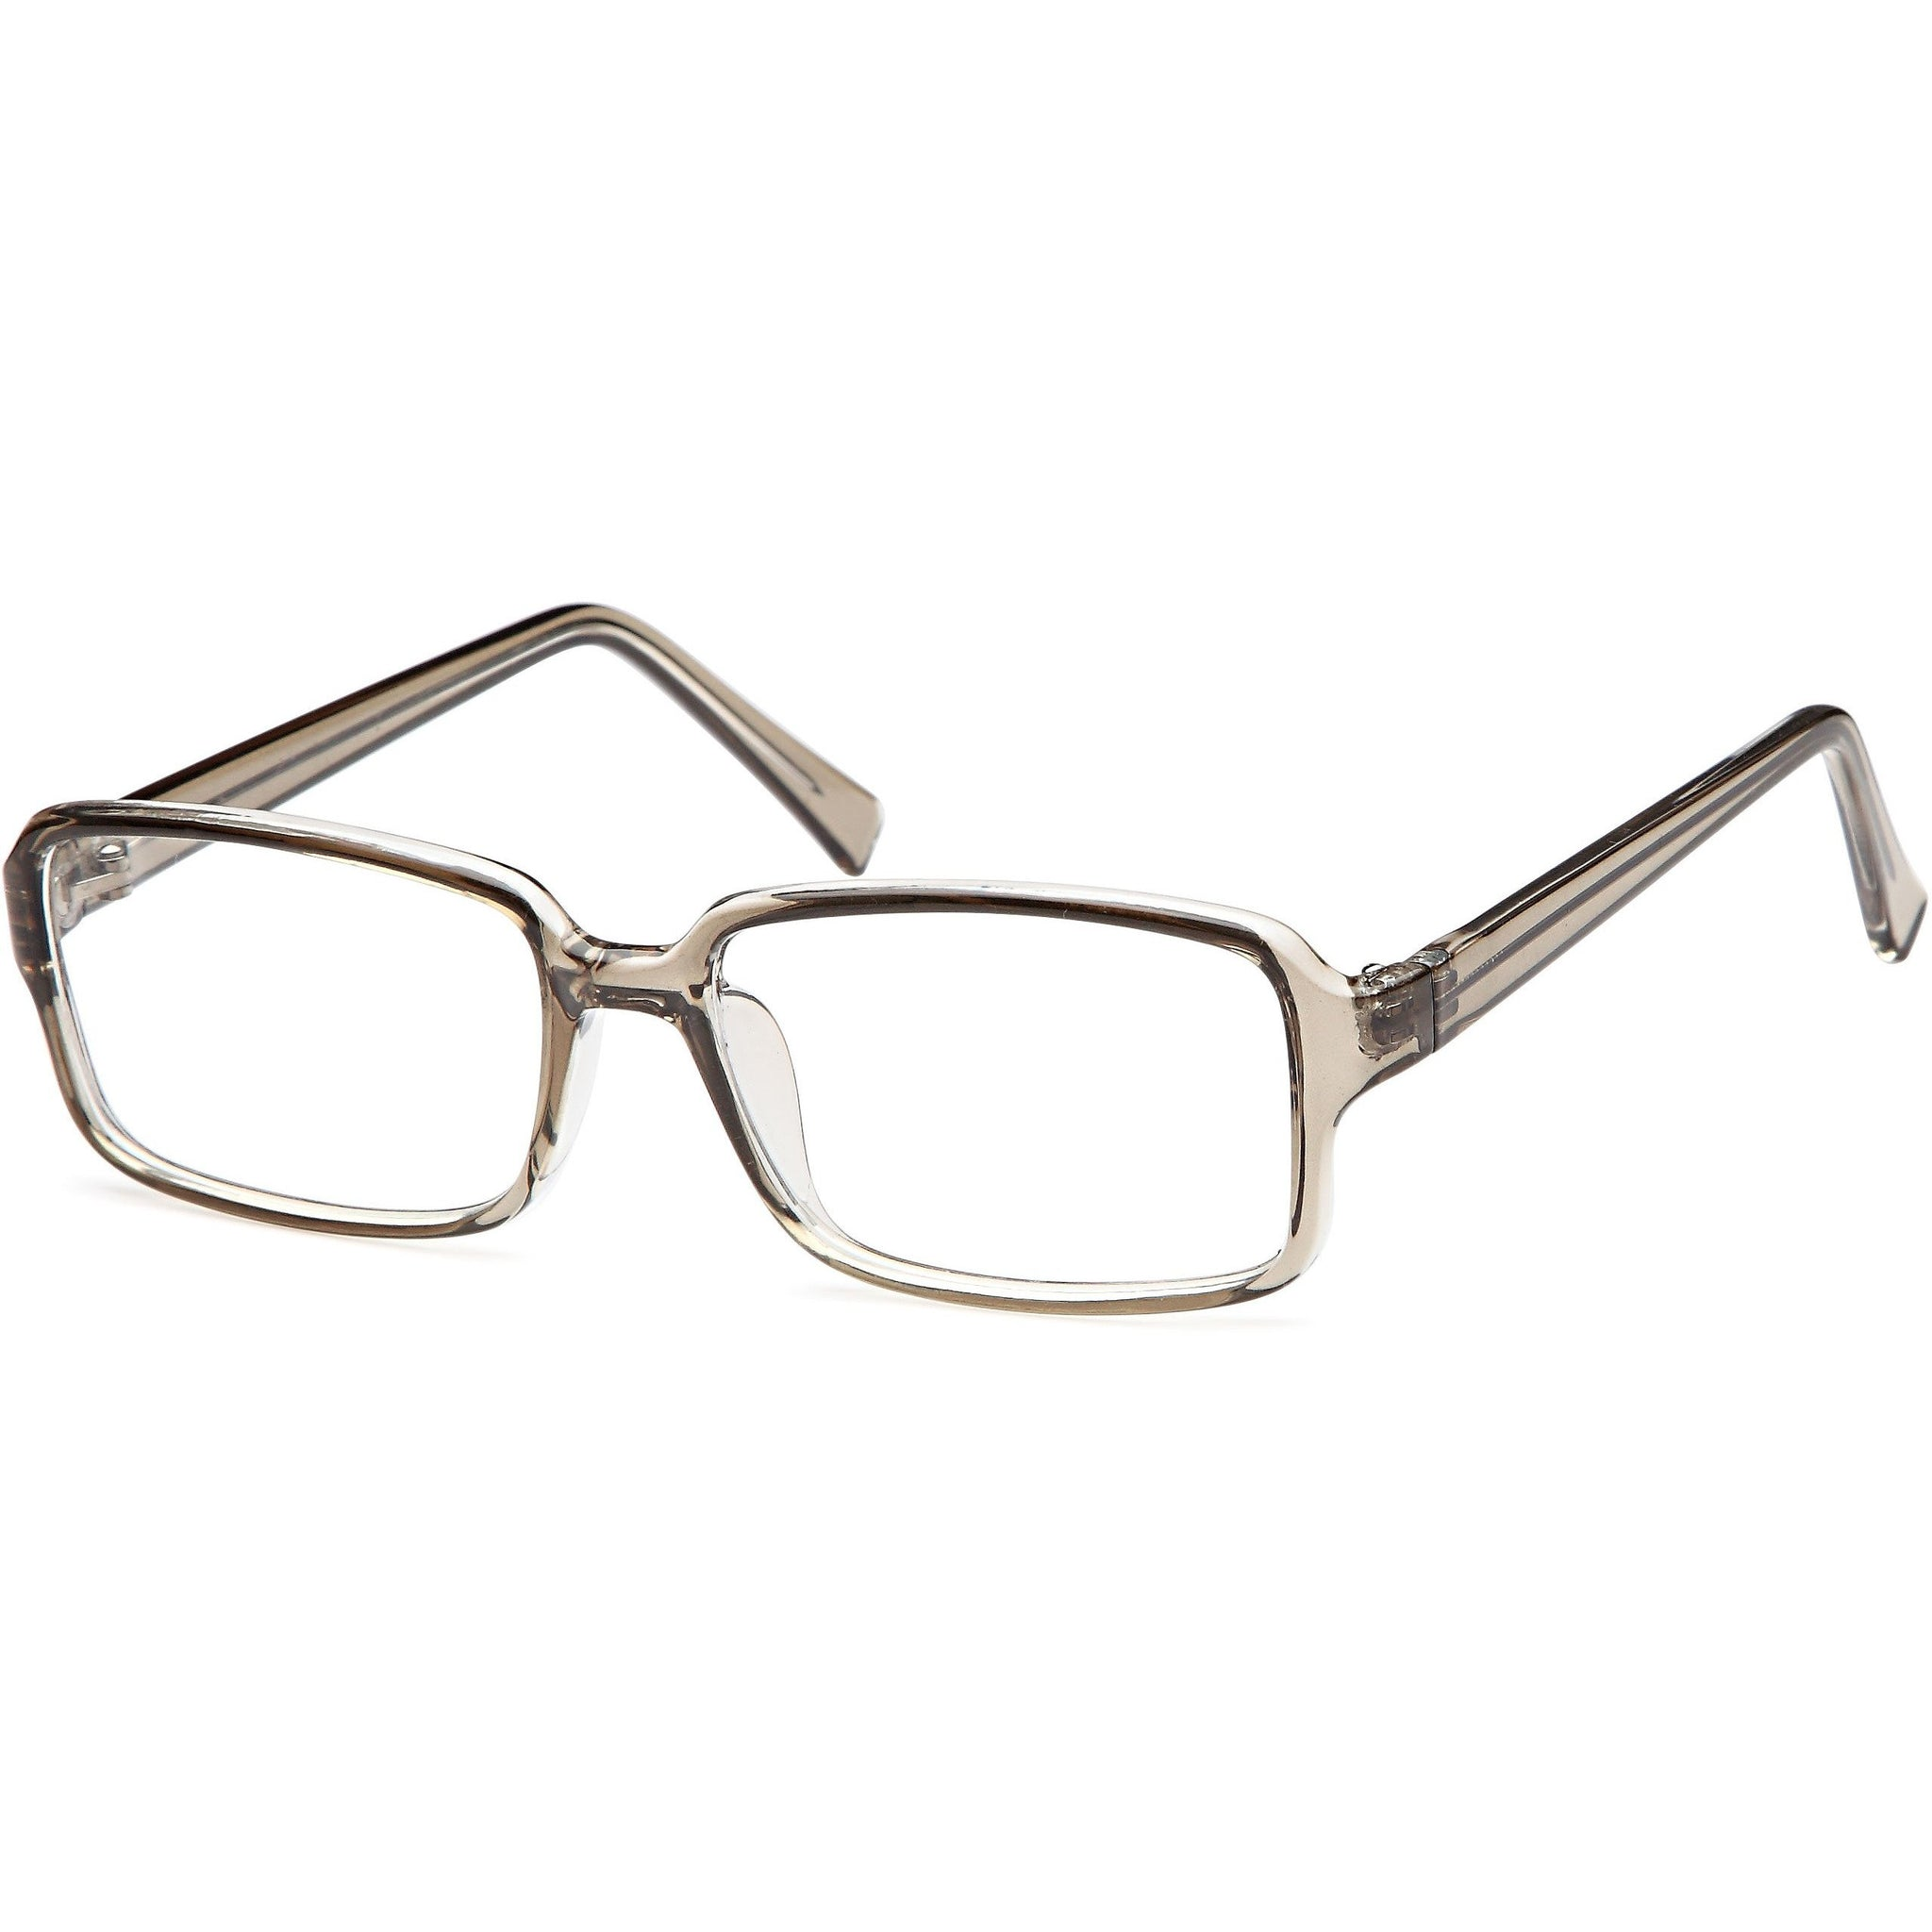 2U Prescription Glasses US 76 Optical Eyeglasses Frames